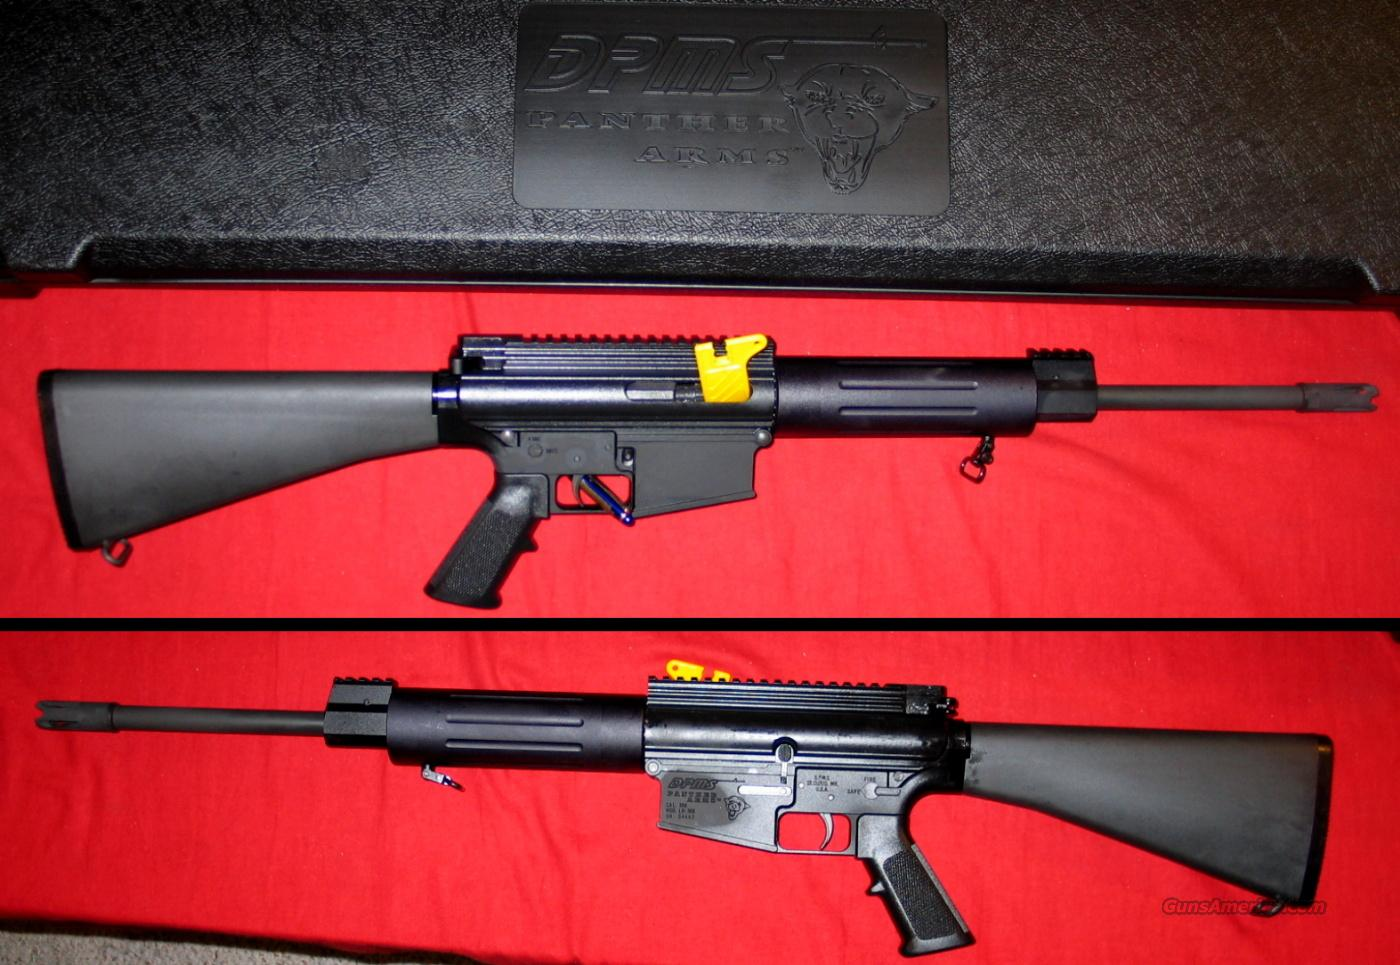 LR-308 T (Tactical), 16 HB - NIB  Guns > Rifles > DPMS - Panther Arms > Complete Rifle